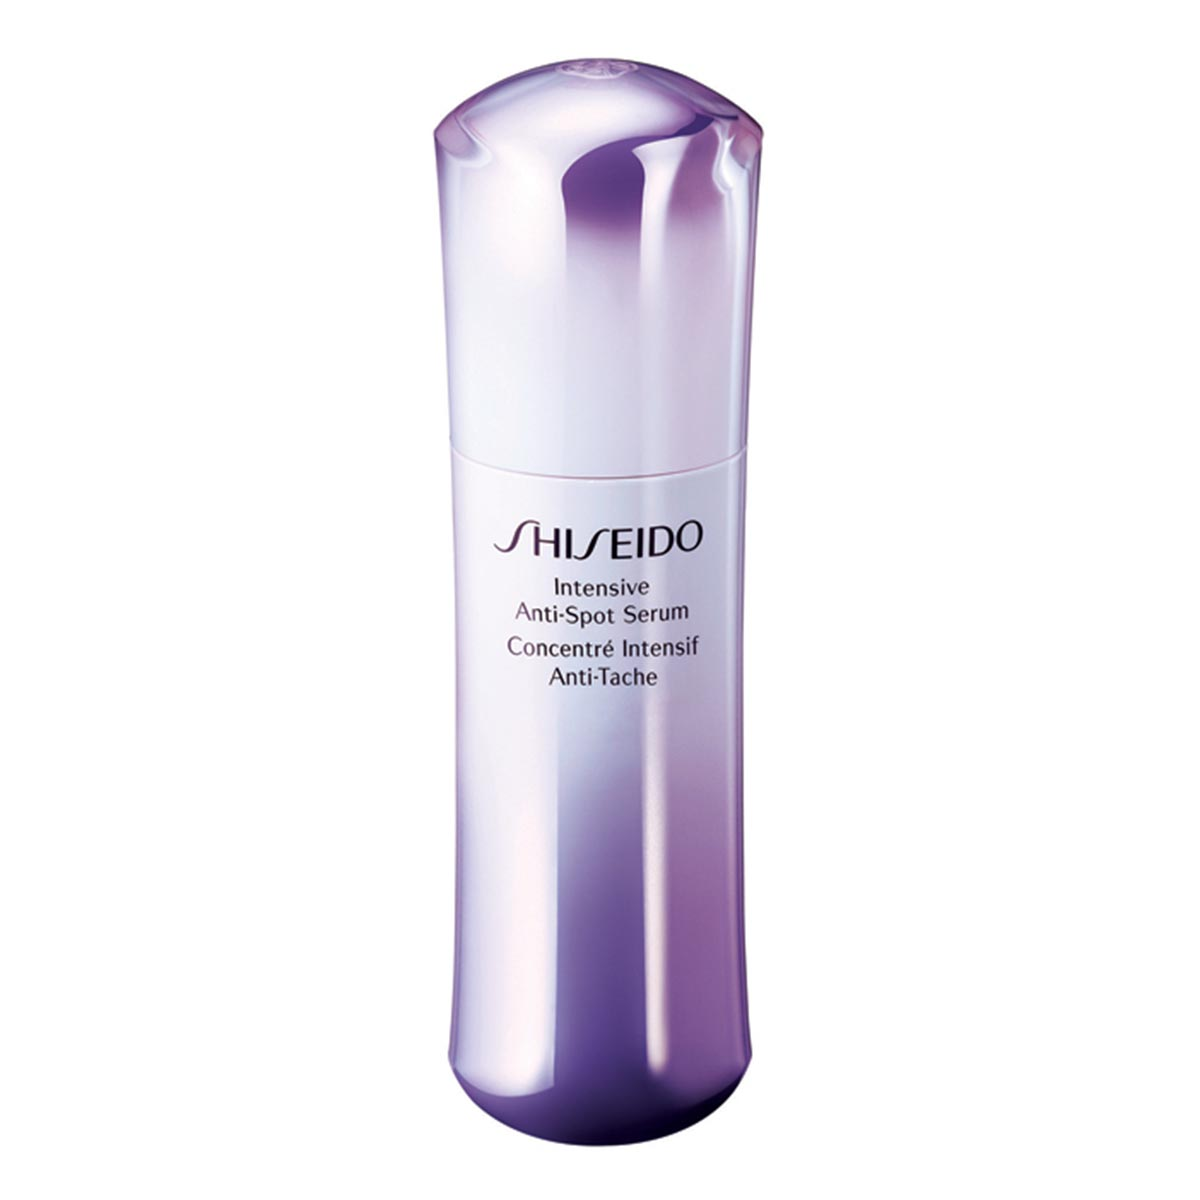 Shiseido intensive anti spot serum 30ml